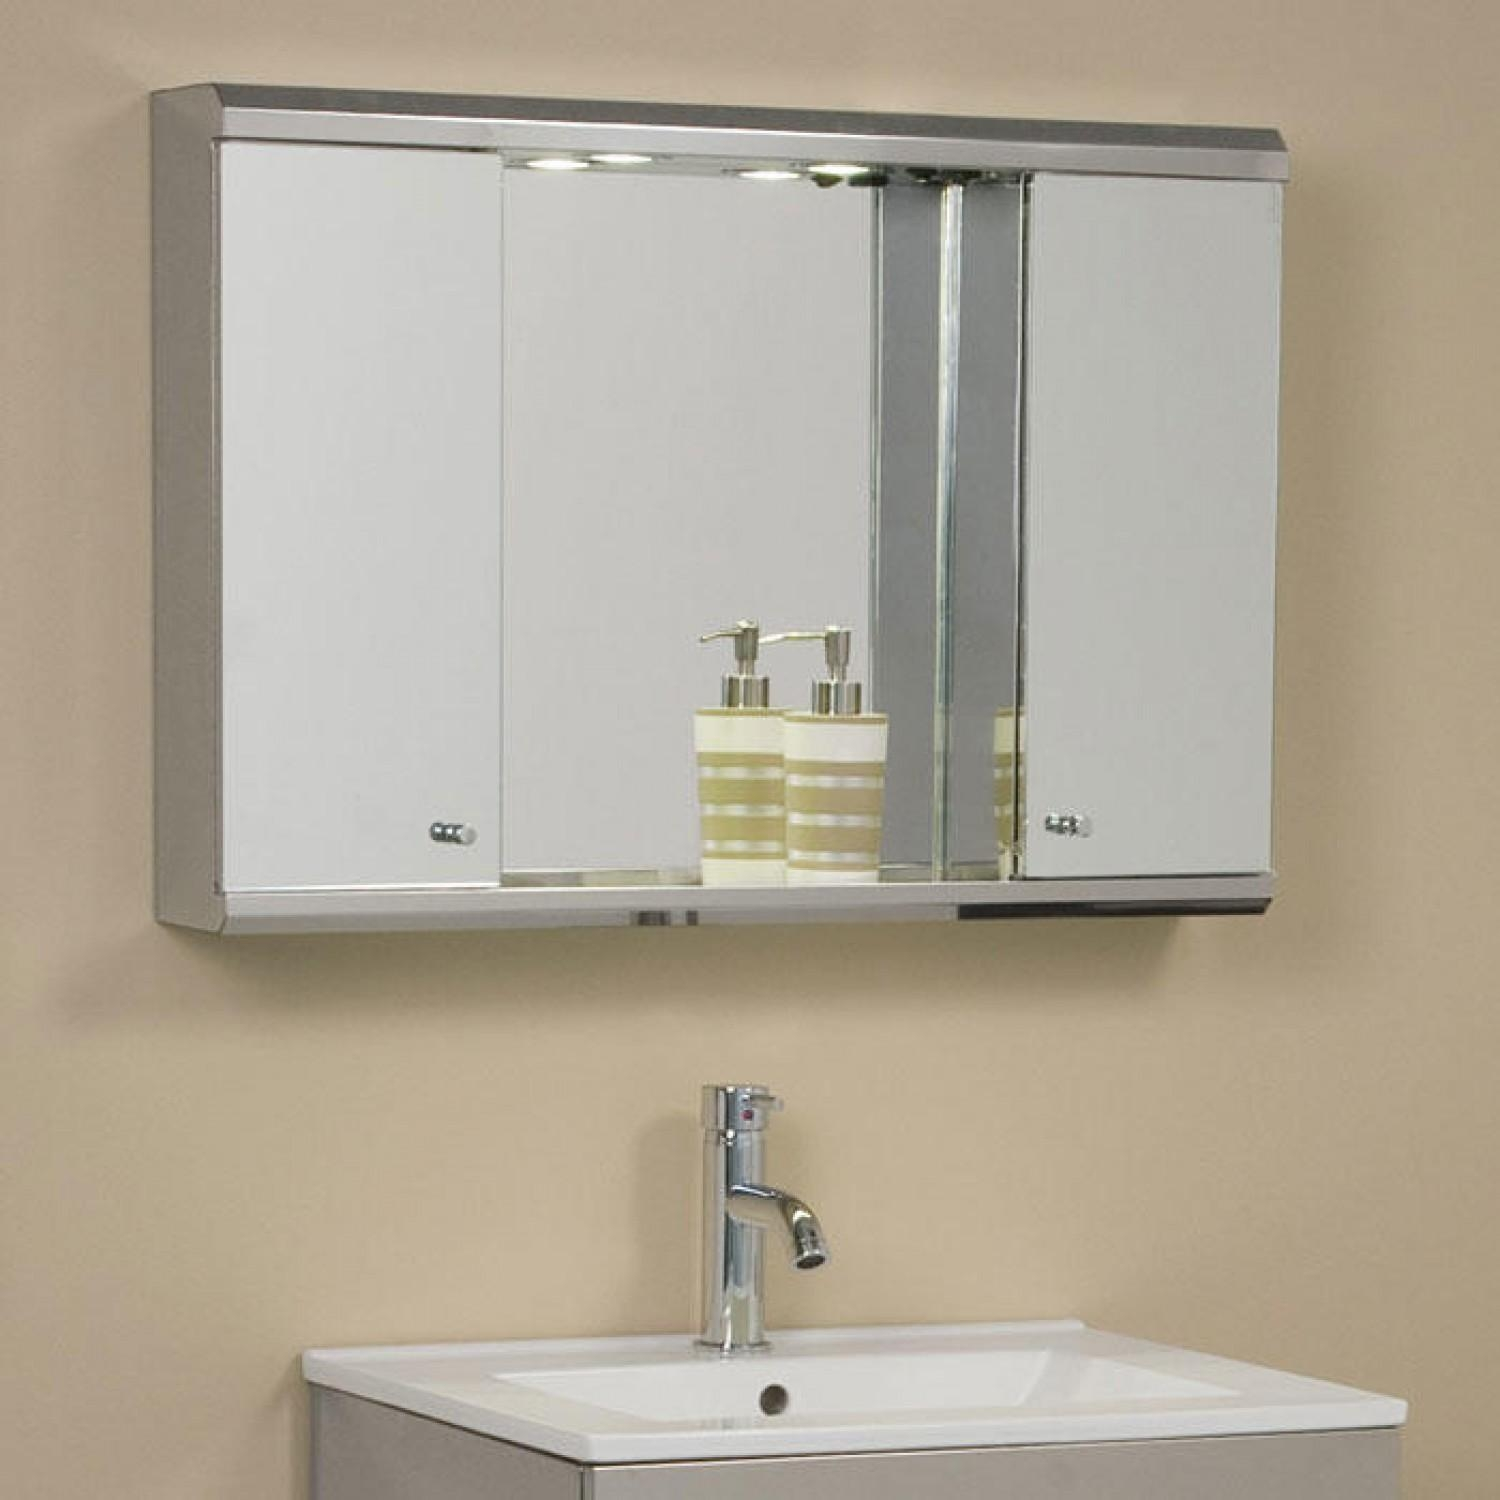 Illumine Dual Stainless Steel Medicine Cabinet With Lighted Mirror Pertaining To Bathroom Medicine Cabinets And Mirrors (Photo 10 of 20)